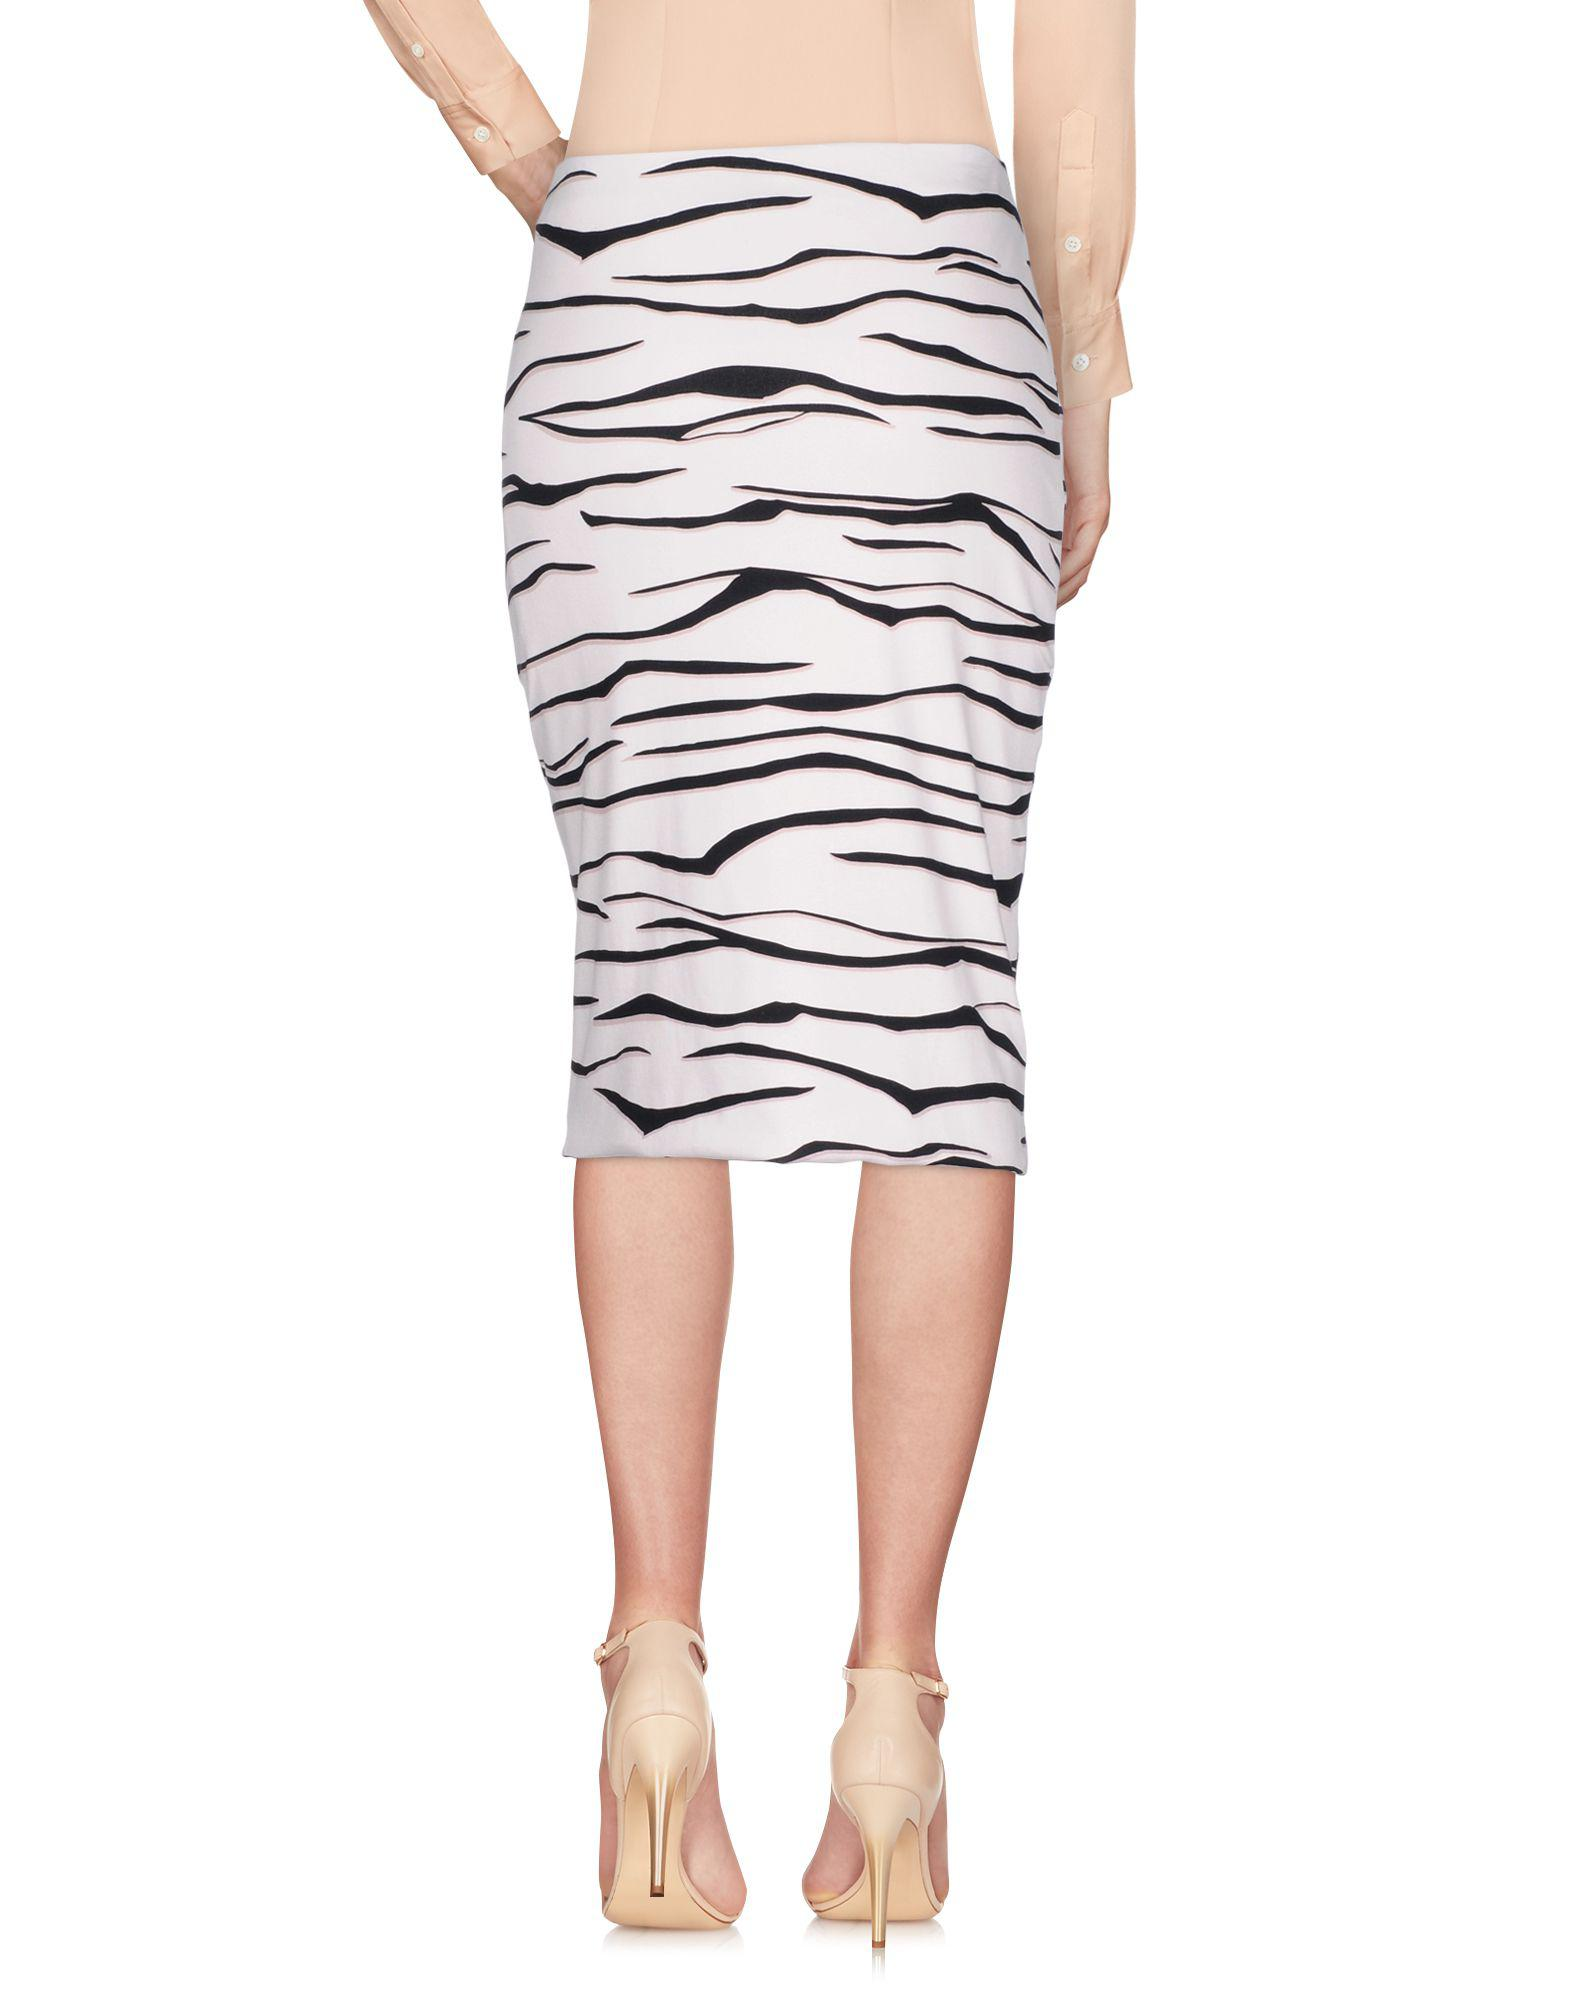 Cool SKIRTS - 3/4 length skirts Marc Cain Outlet Footlocker Pictures JO1TqYqV